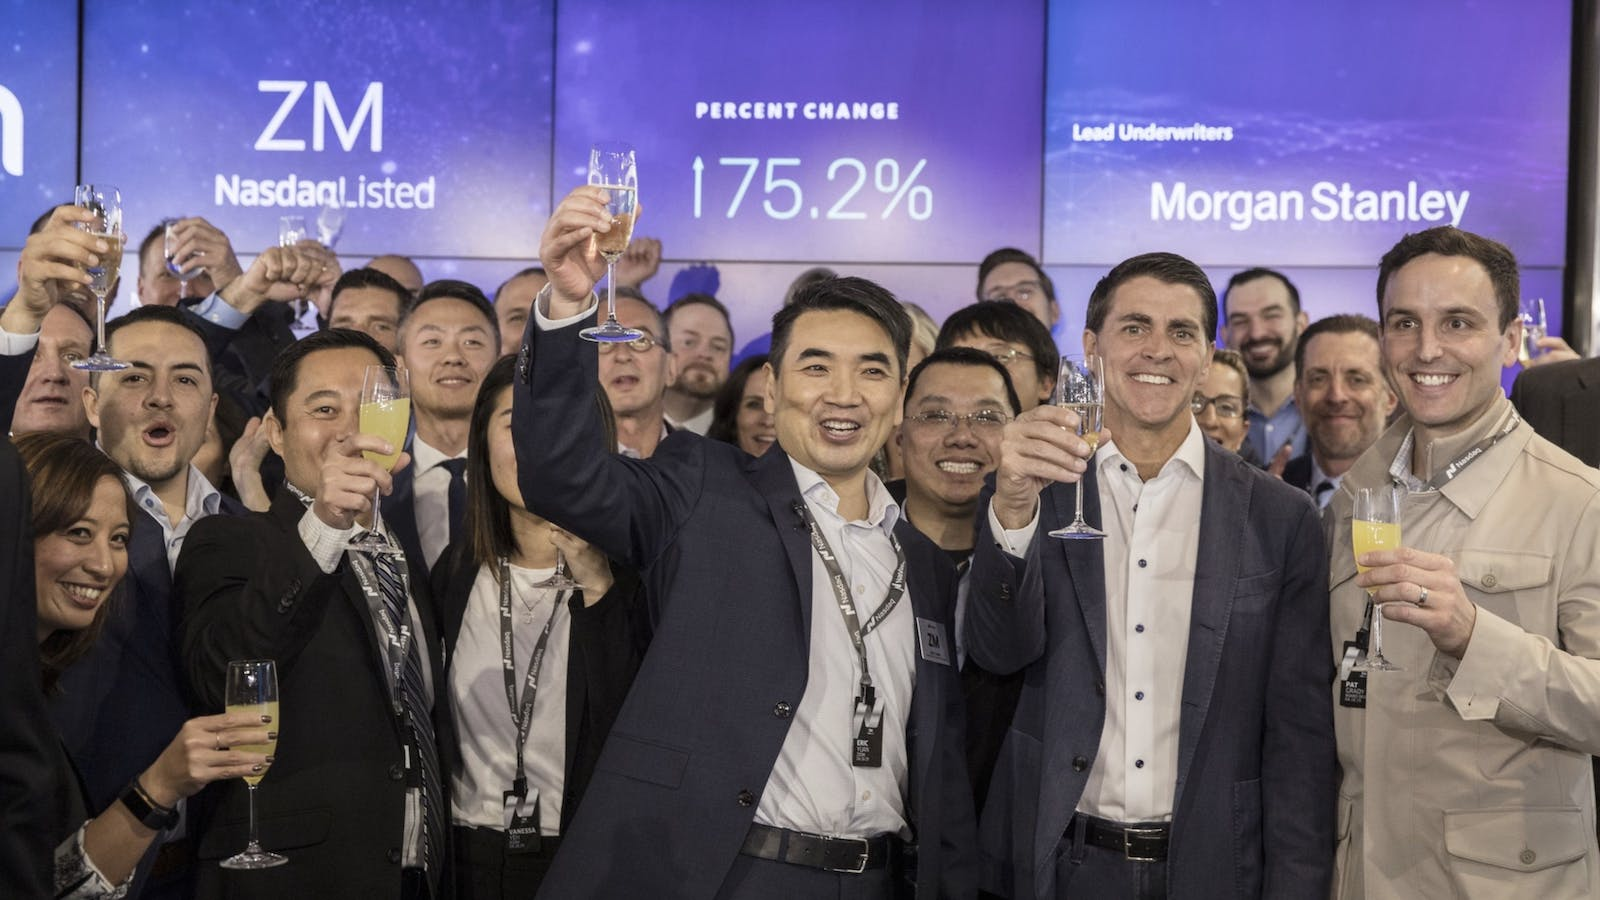 Zoom CEO Eric Yuan and others celebrate the day Zoom went public, in April 2019. Photo by Bloomberg